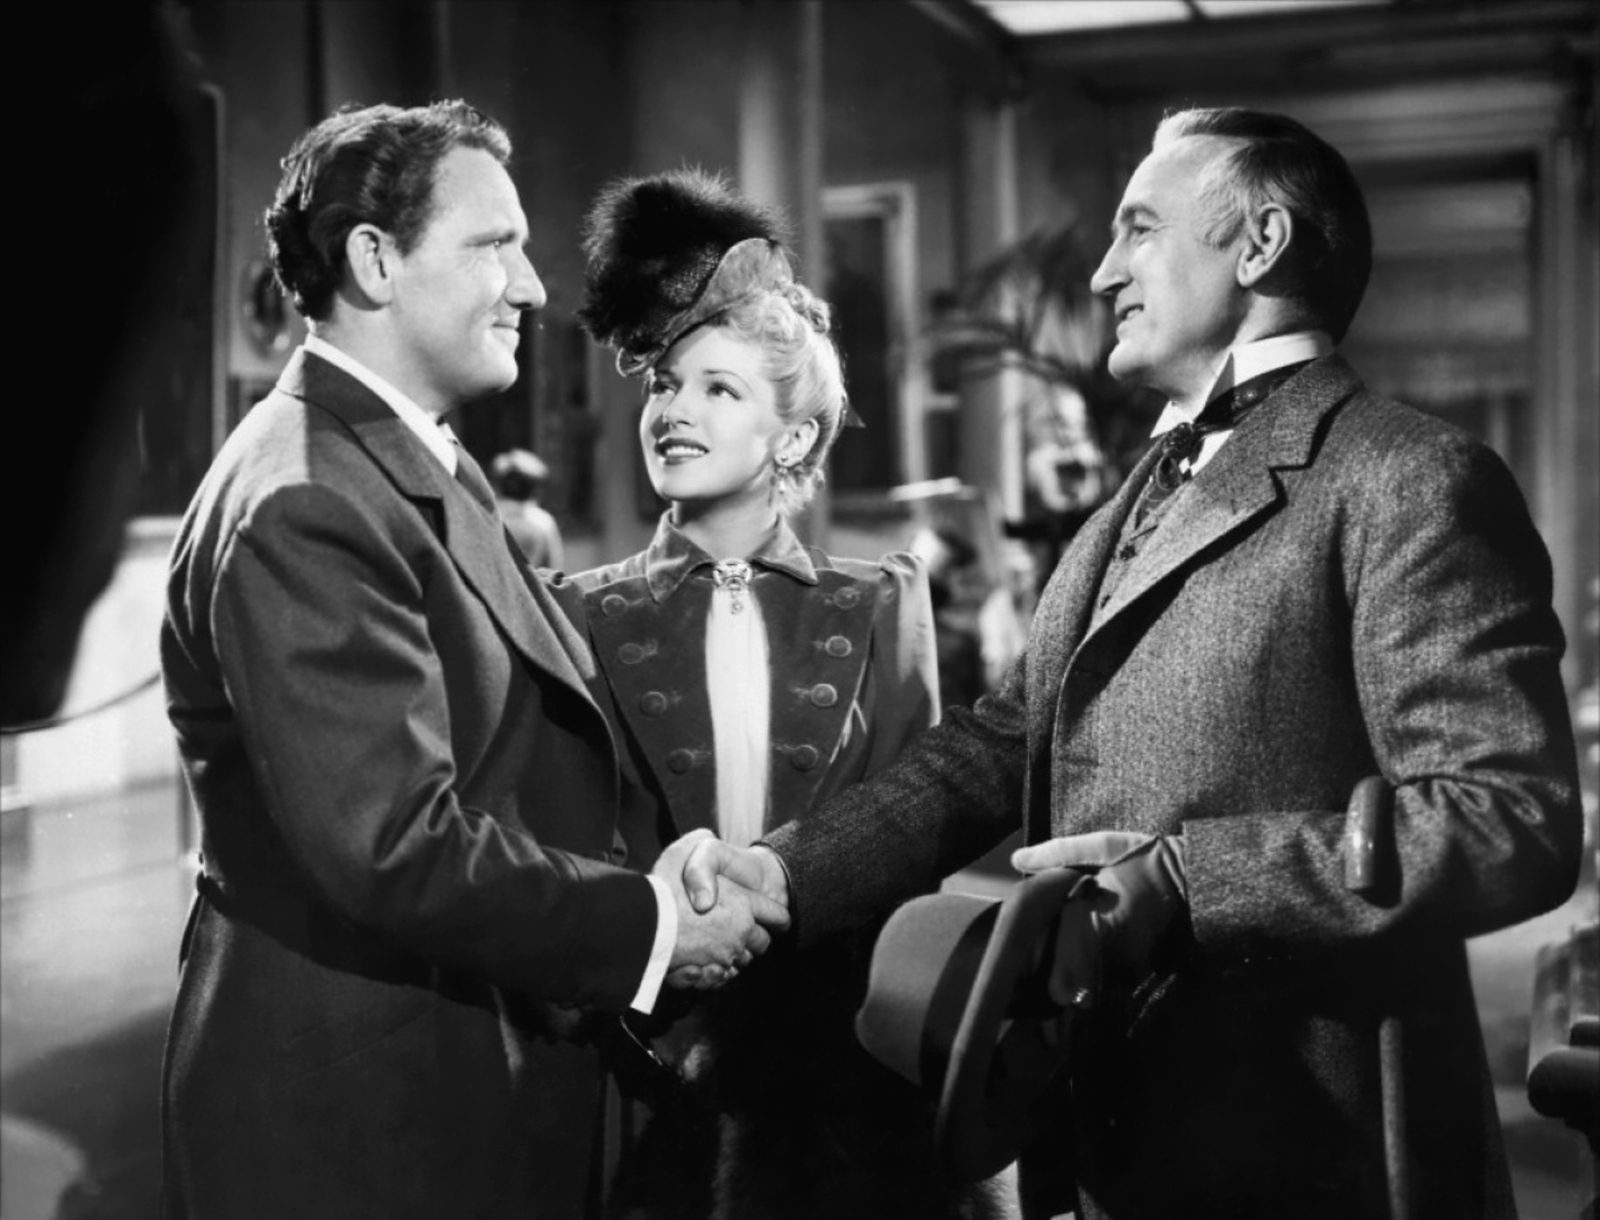 Spencer Tracy with Lana Turner and Donald Crisp